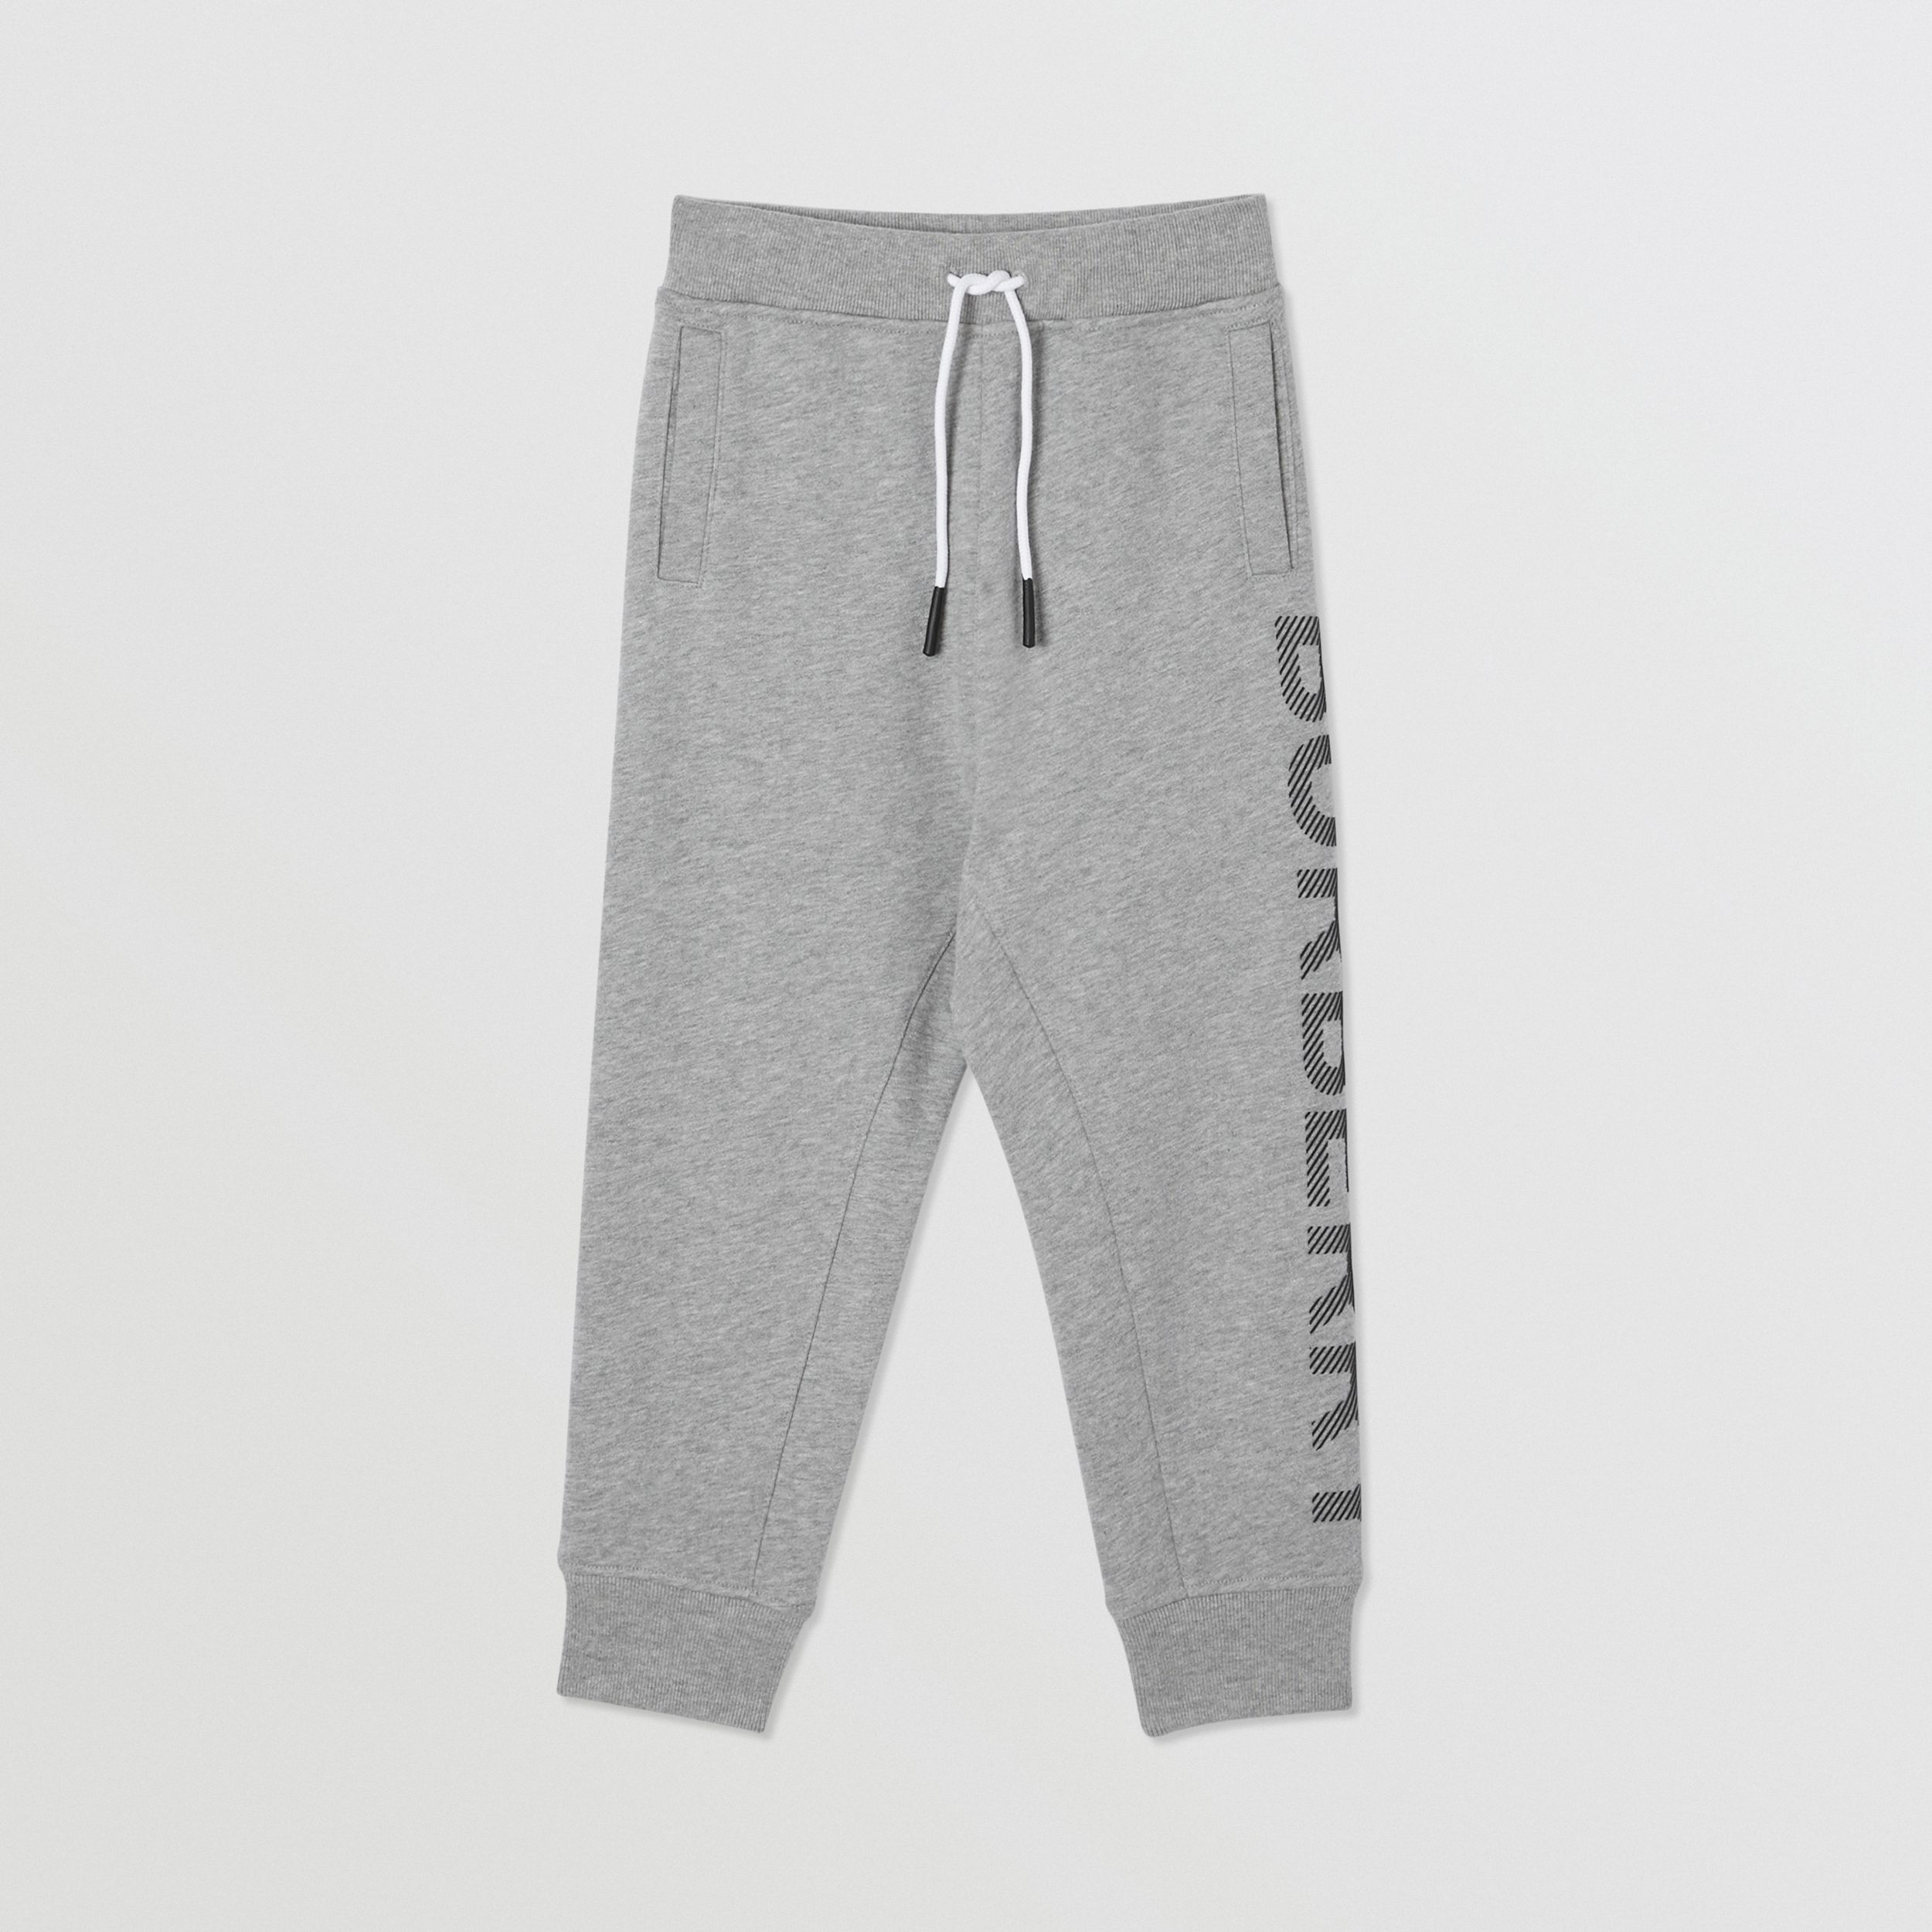 Logo Print Cotton Drawcord Jogging Pants in Grey Melange/black | Burberry - 1